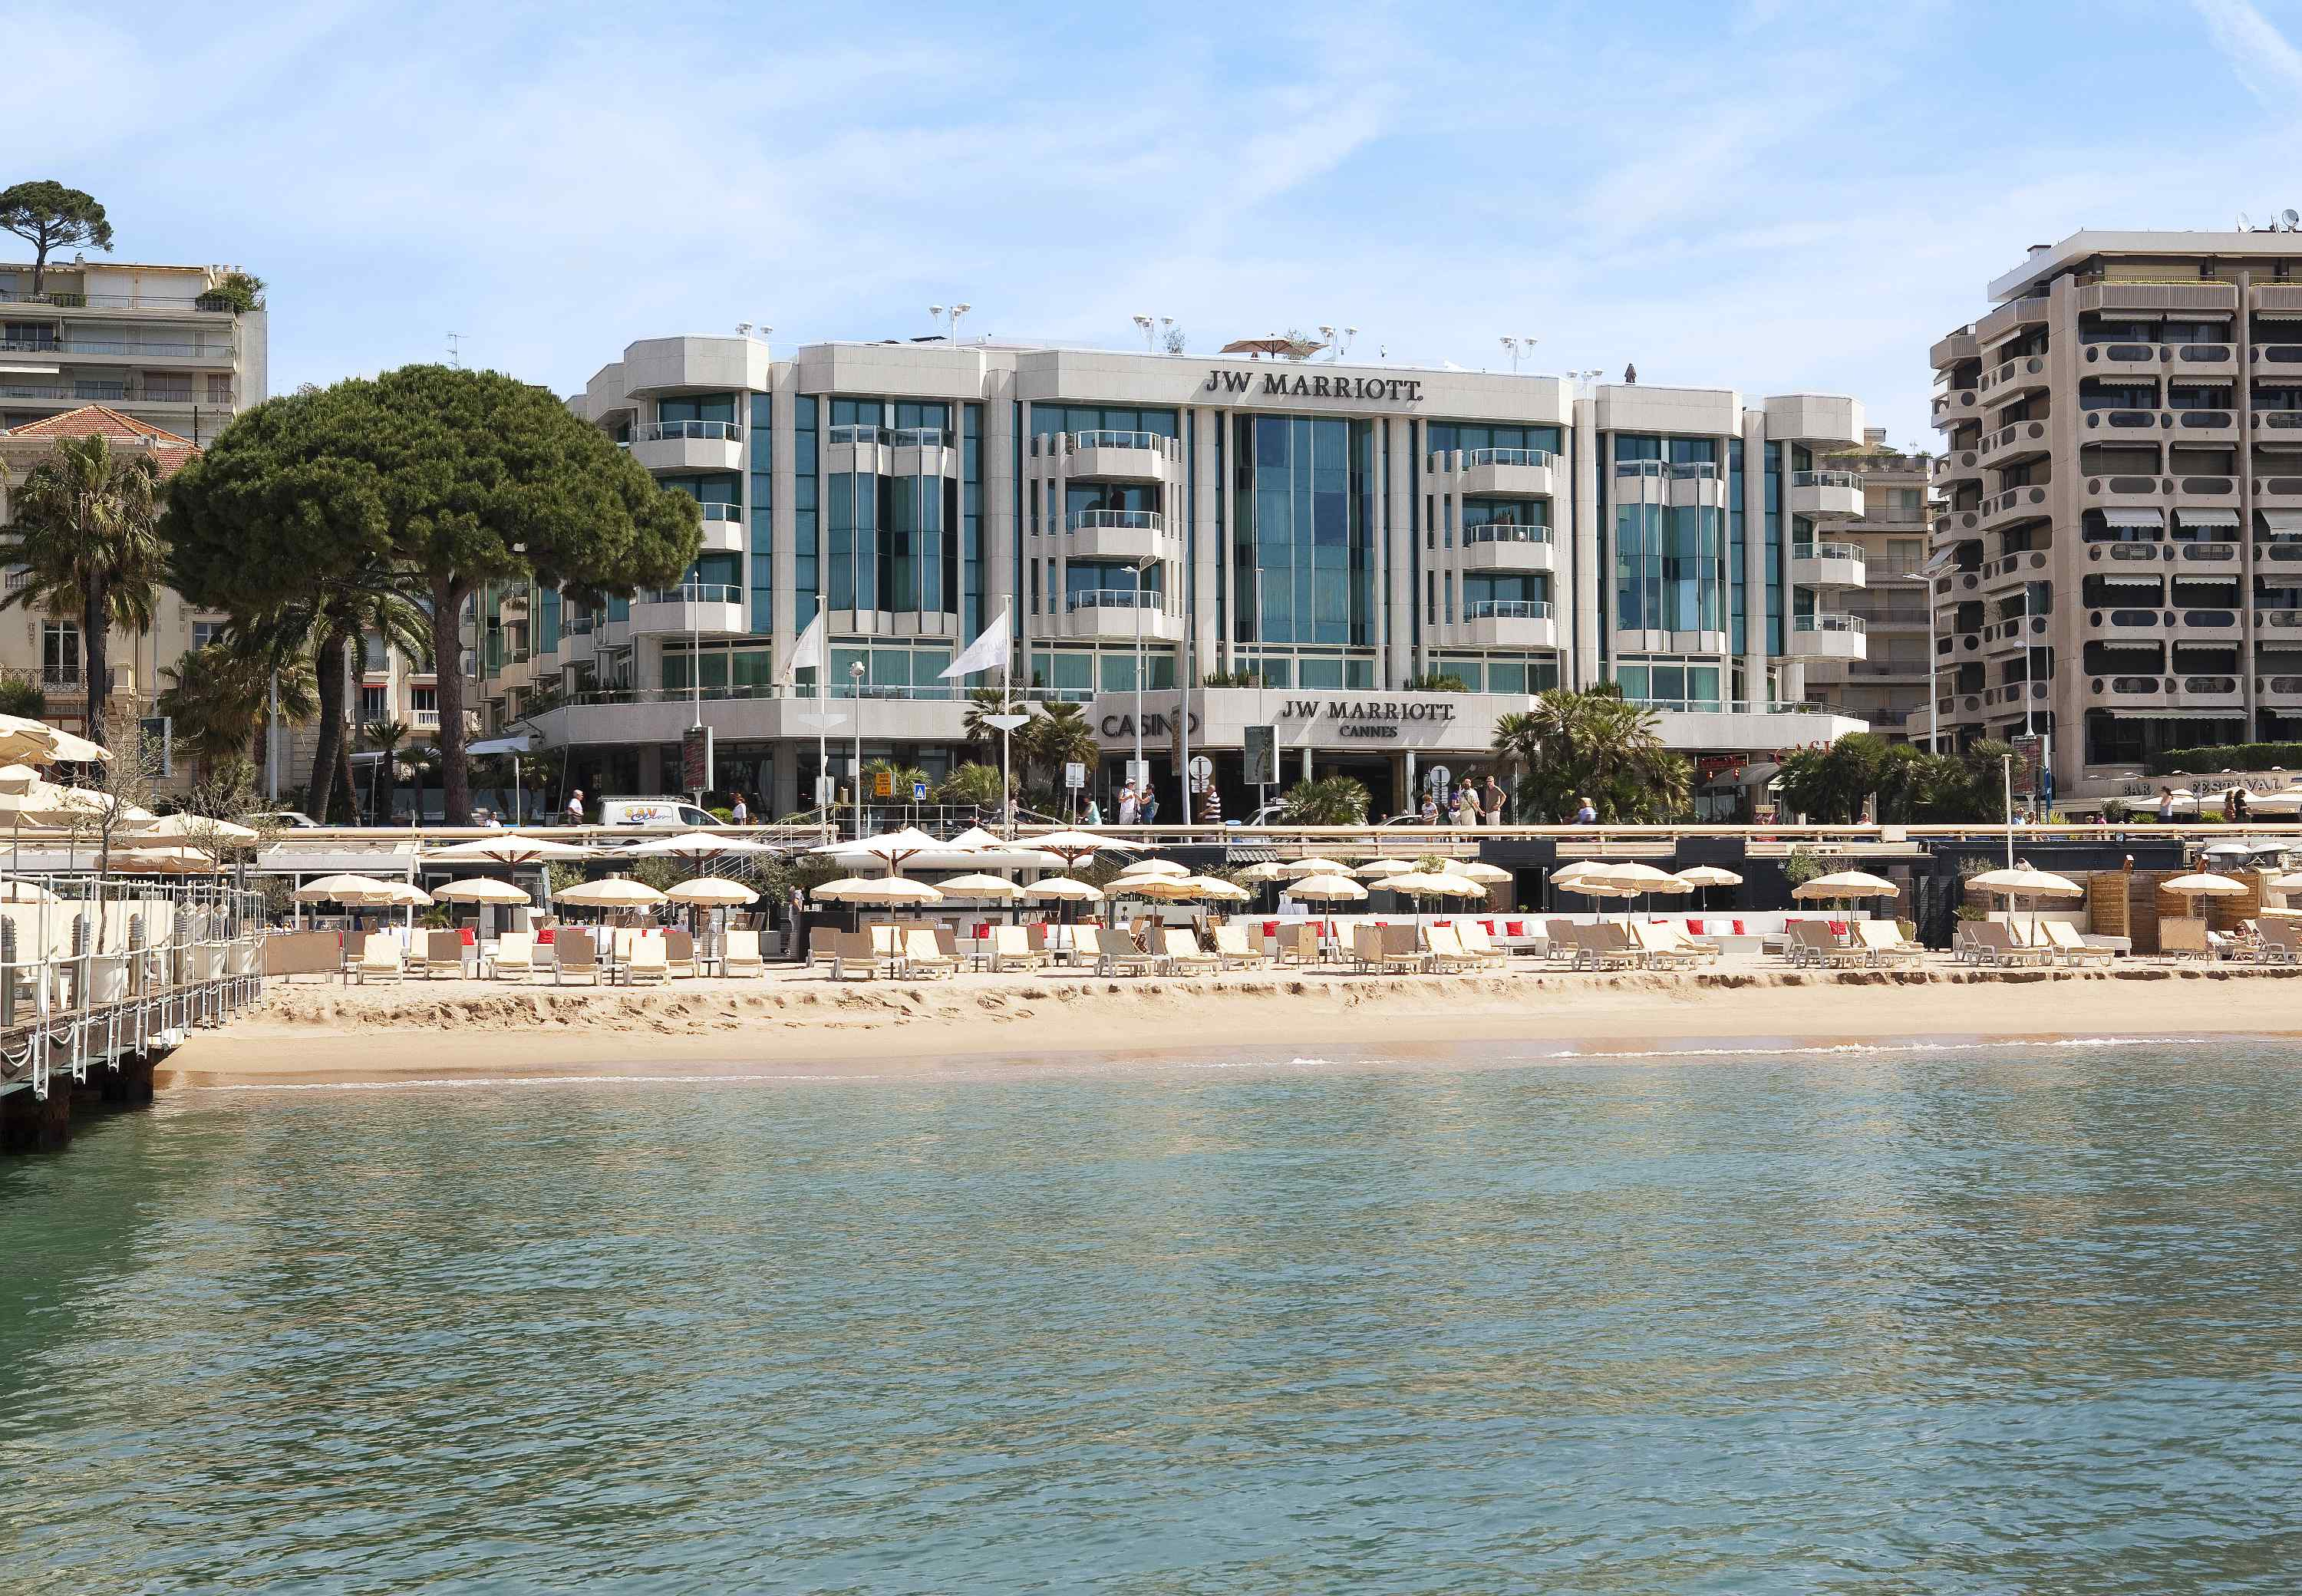 JW Marriott Hotel Cannes  Hotel